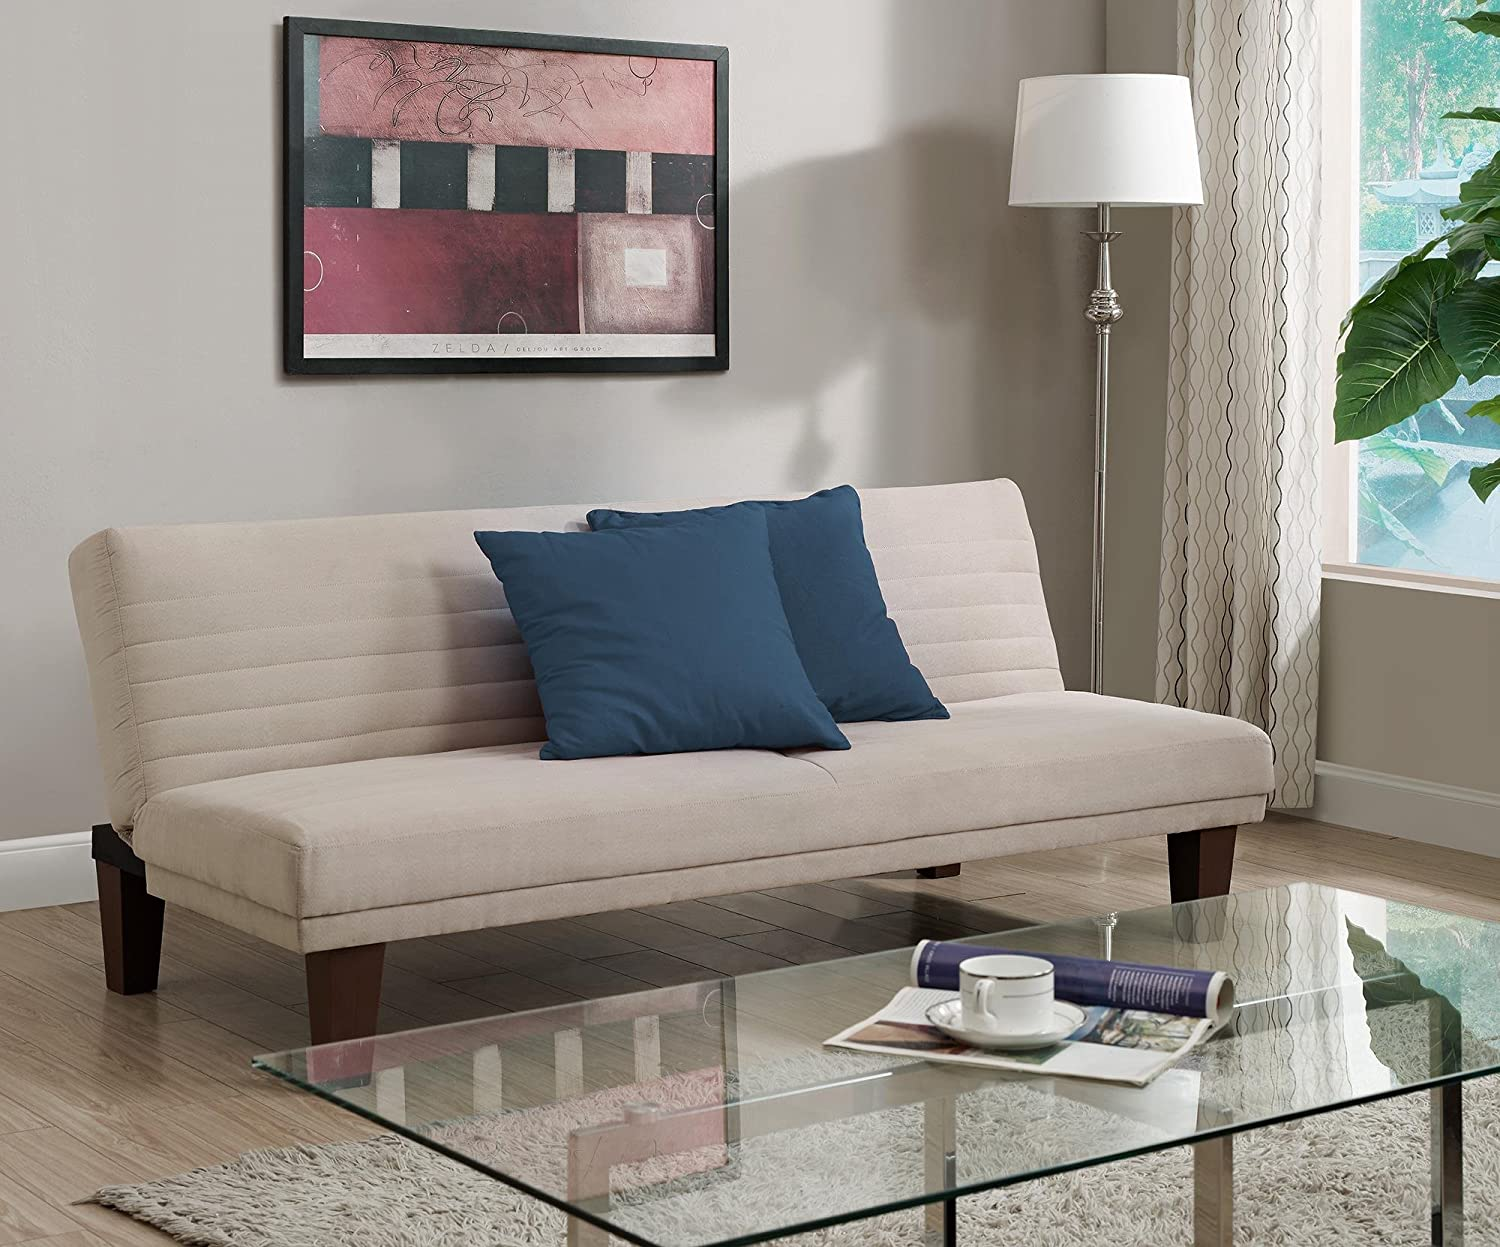 couchbed memory comfy mattress white window with bed sofa meets couch foam